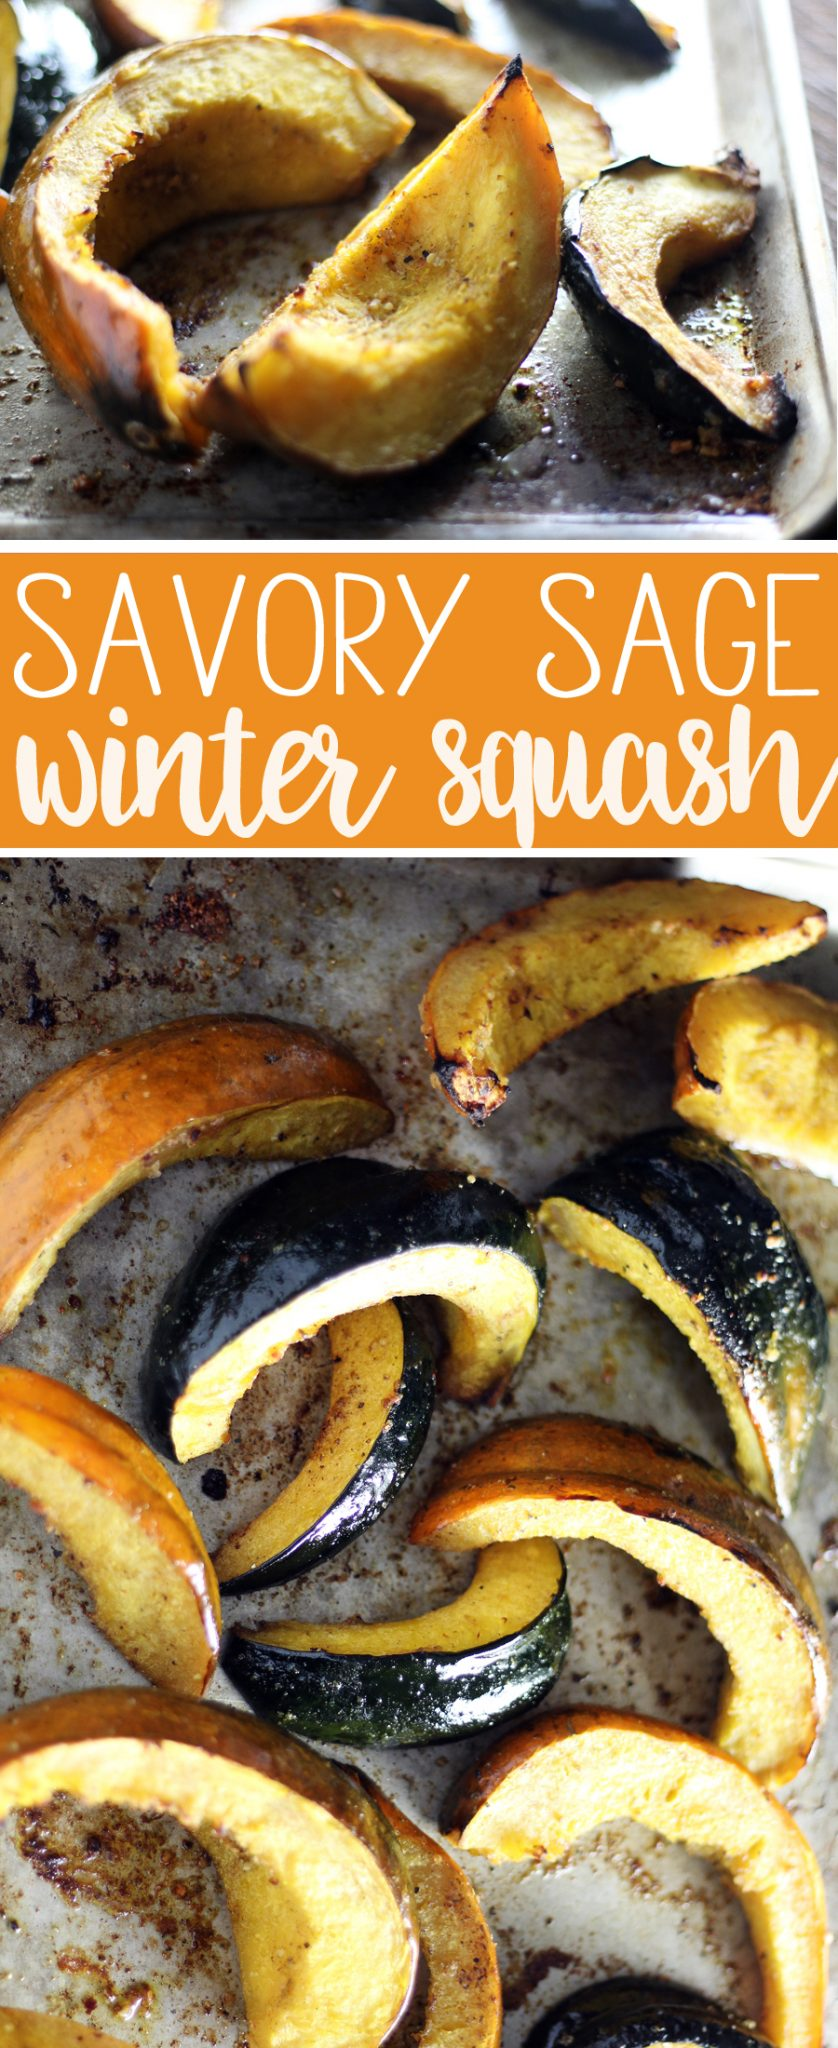 How to Make Savory Sage Winter Squash - Enjoy a rustic + seasonal side dish of slight sweet acorn winter squash tossed with olive oil, sage, and savory spice.  #wintersquash #acornsquash #easyrecipe